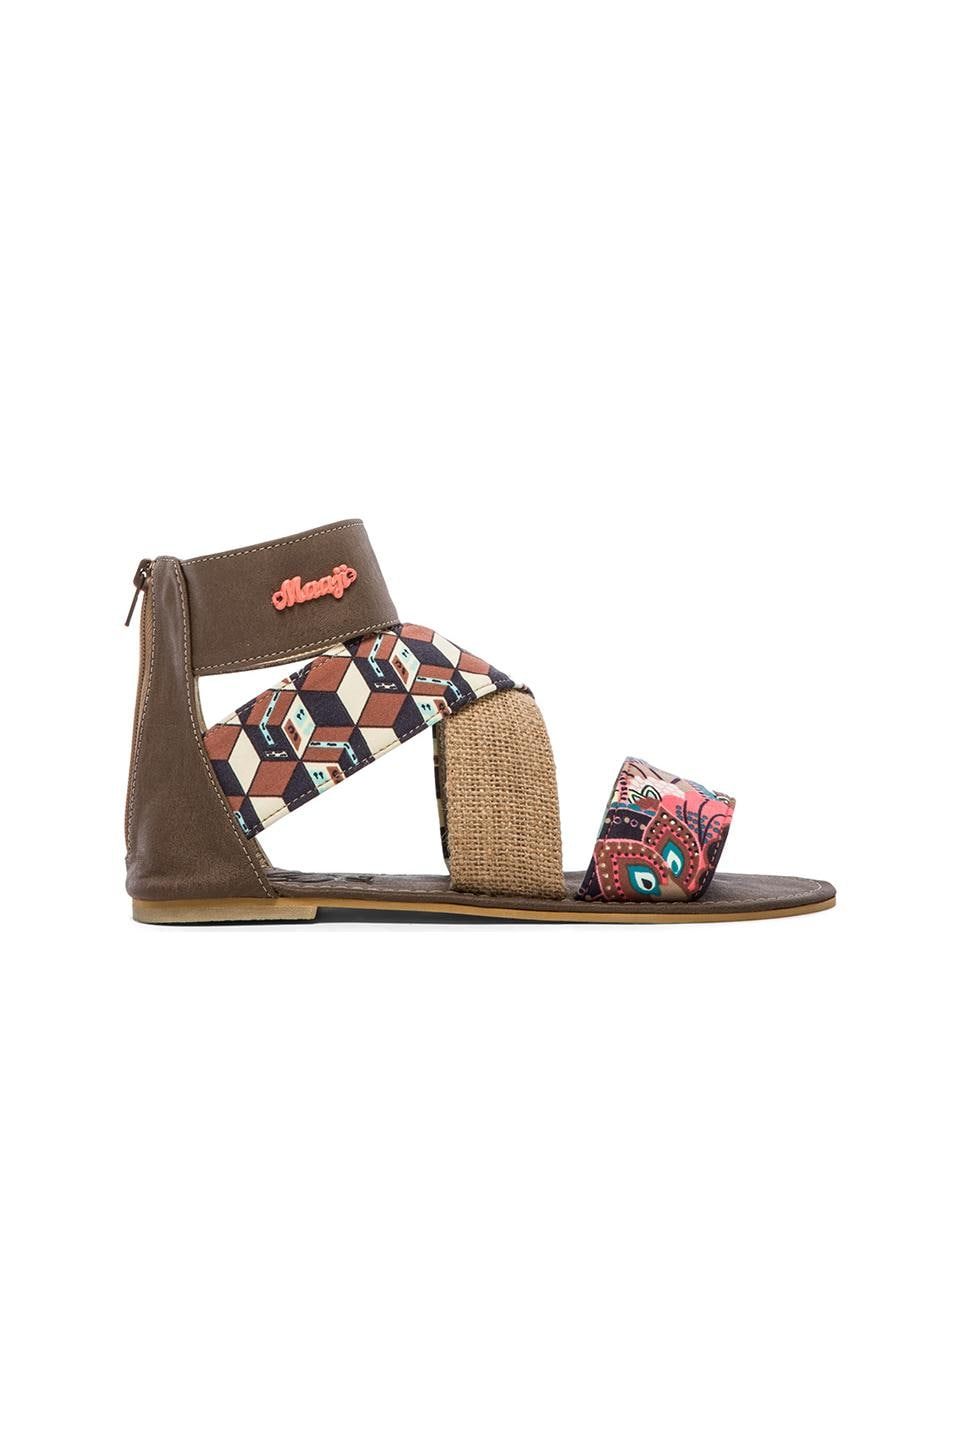 Maaji Sandals in Jute Brown